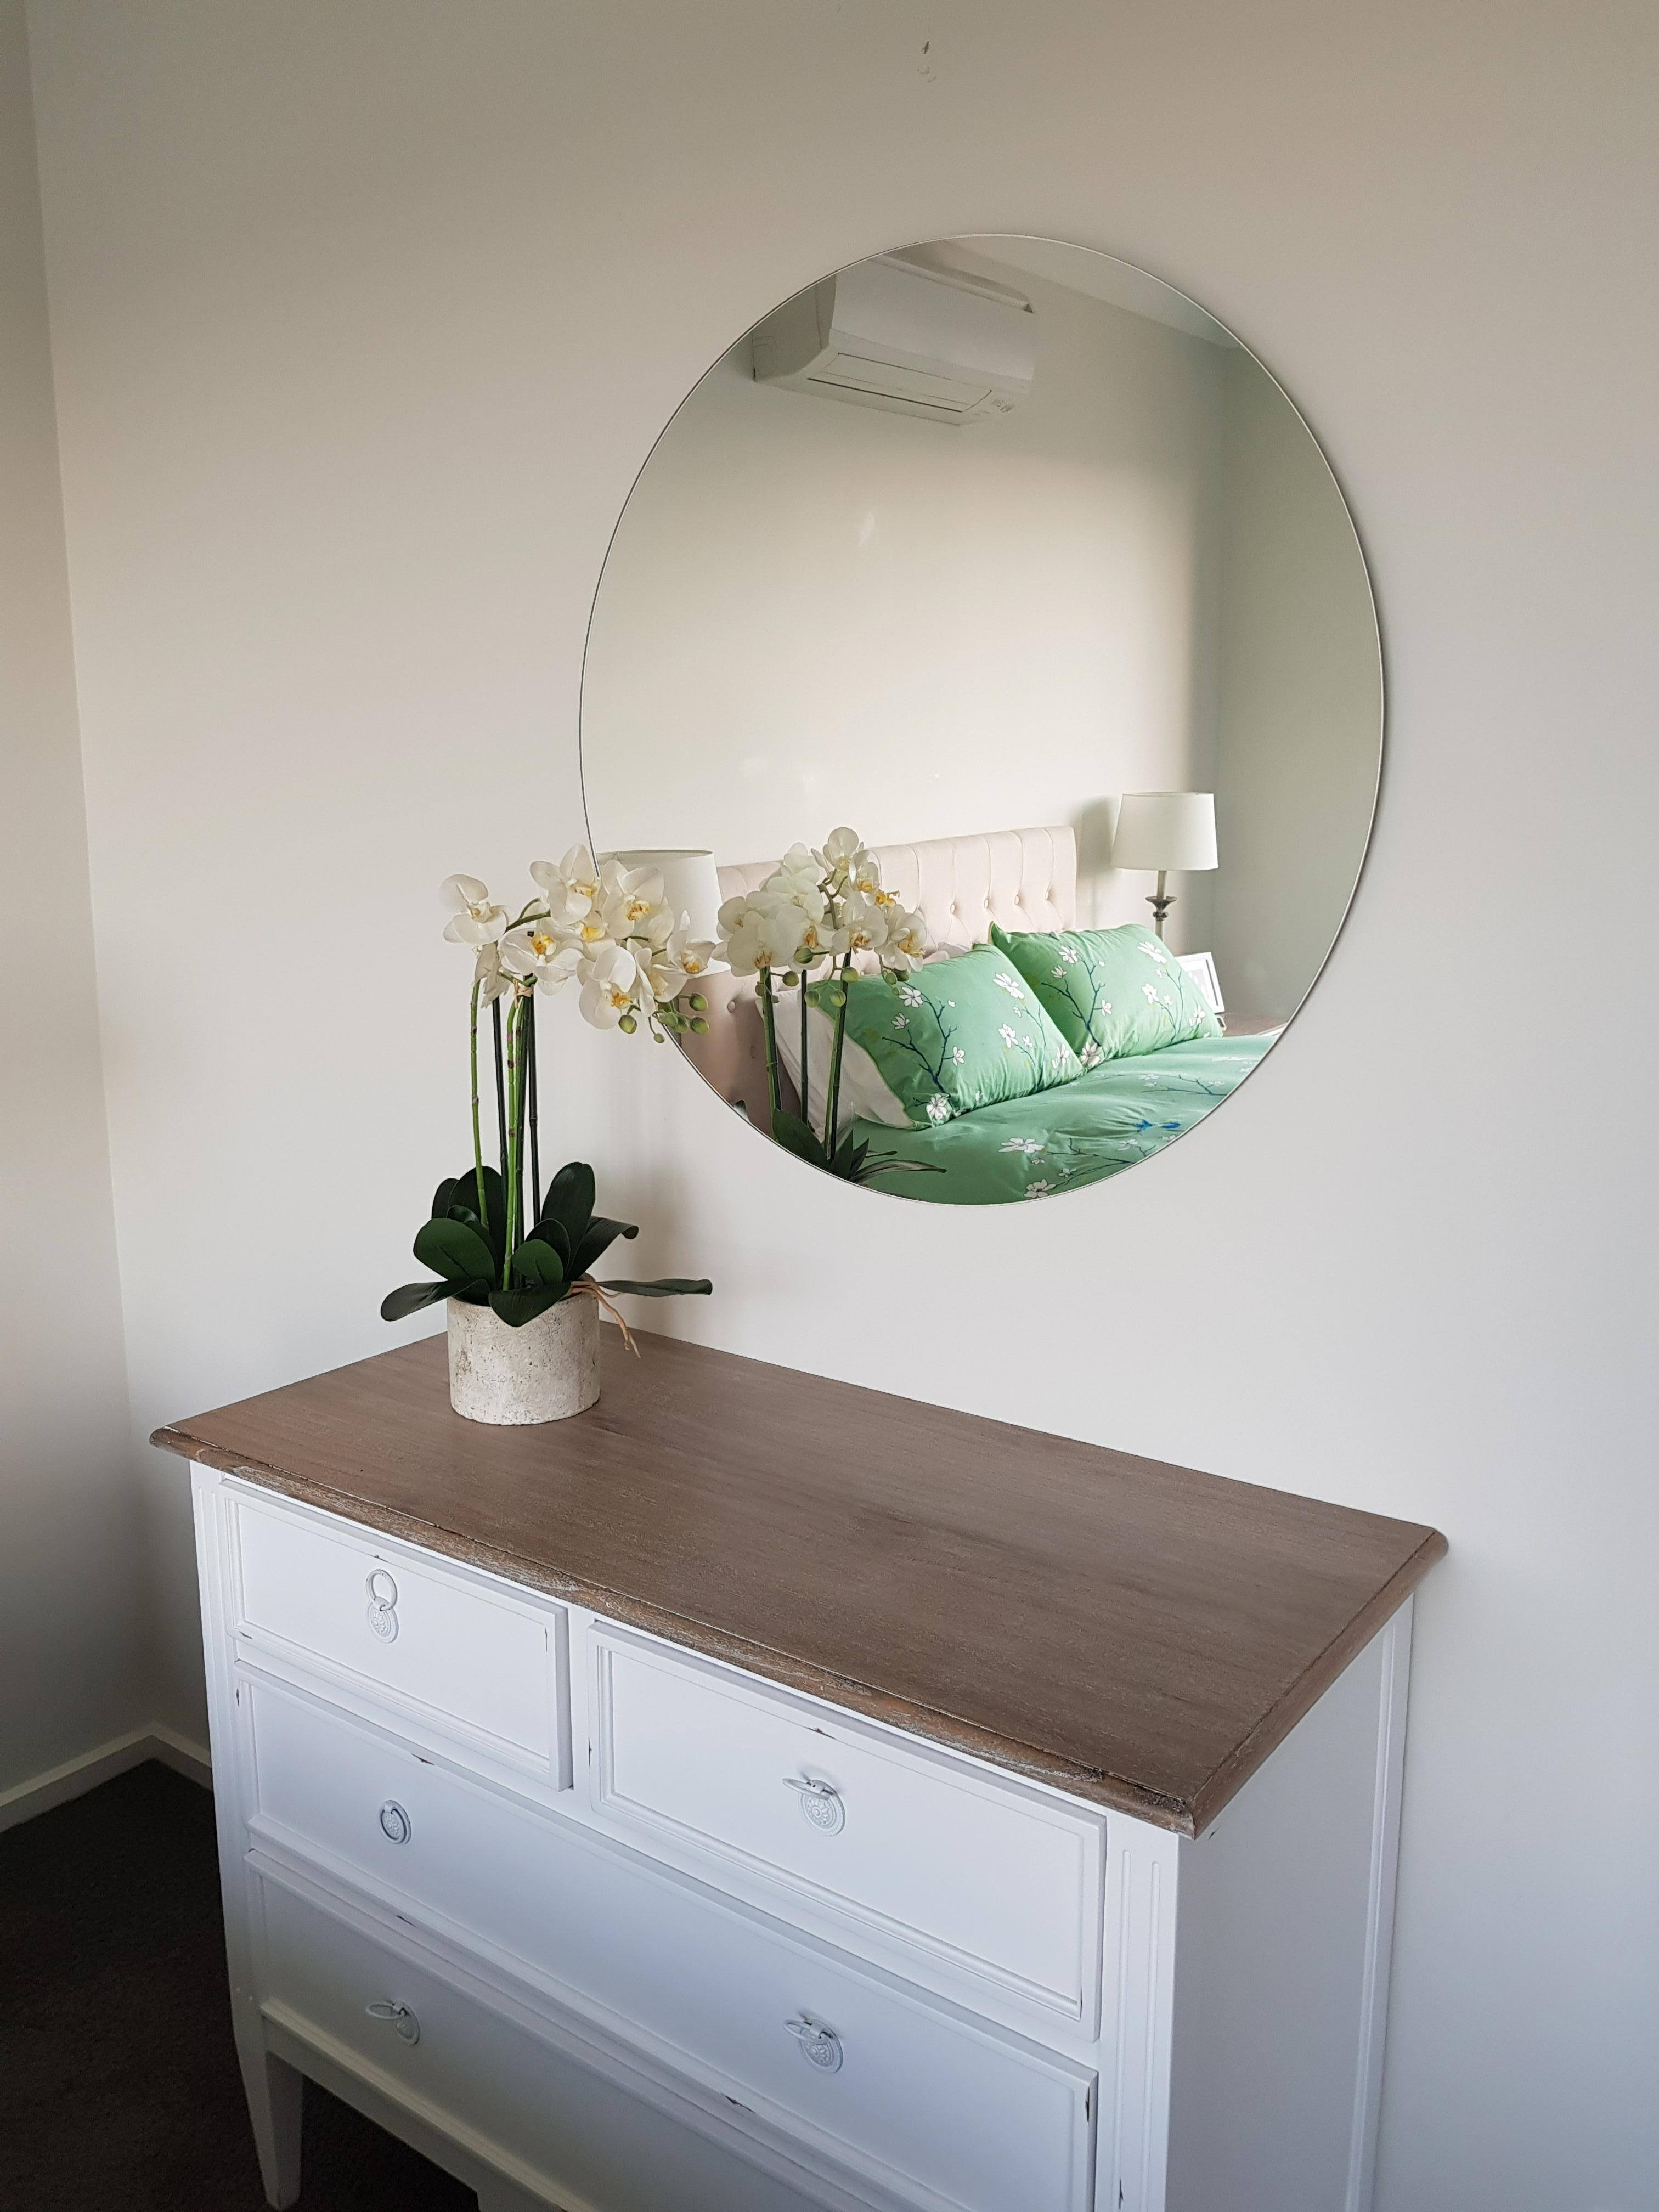 Frameless Large Wall Mirrors Intended For Well Liked Large Round Frameless Polished Edge Mirror Bathroom Or (View 17 of 20)